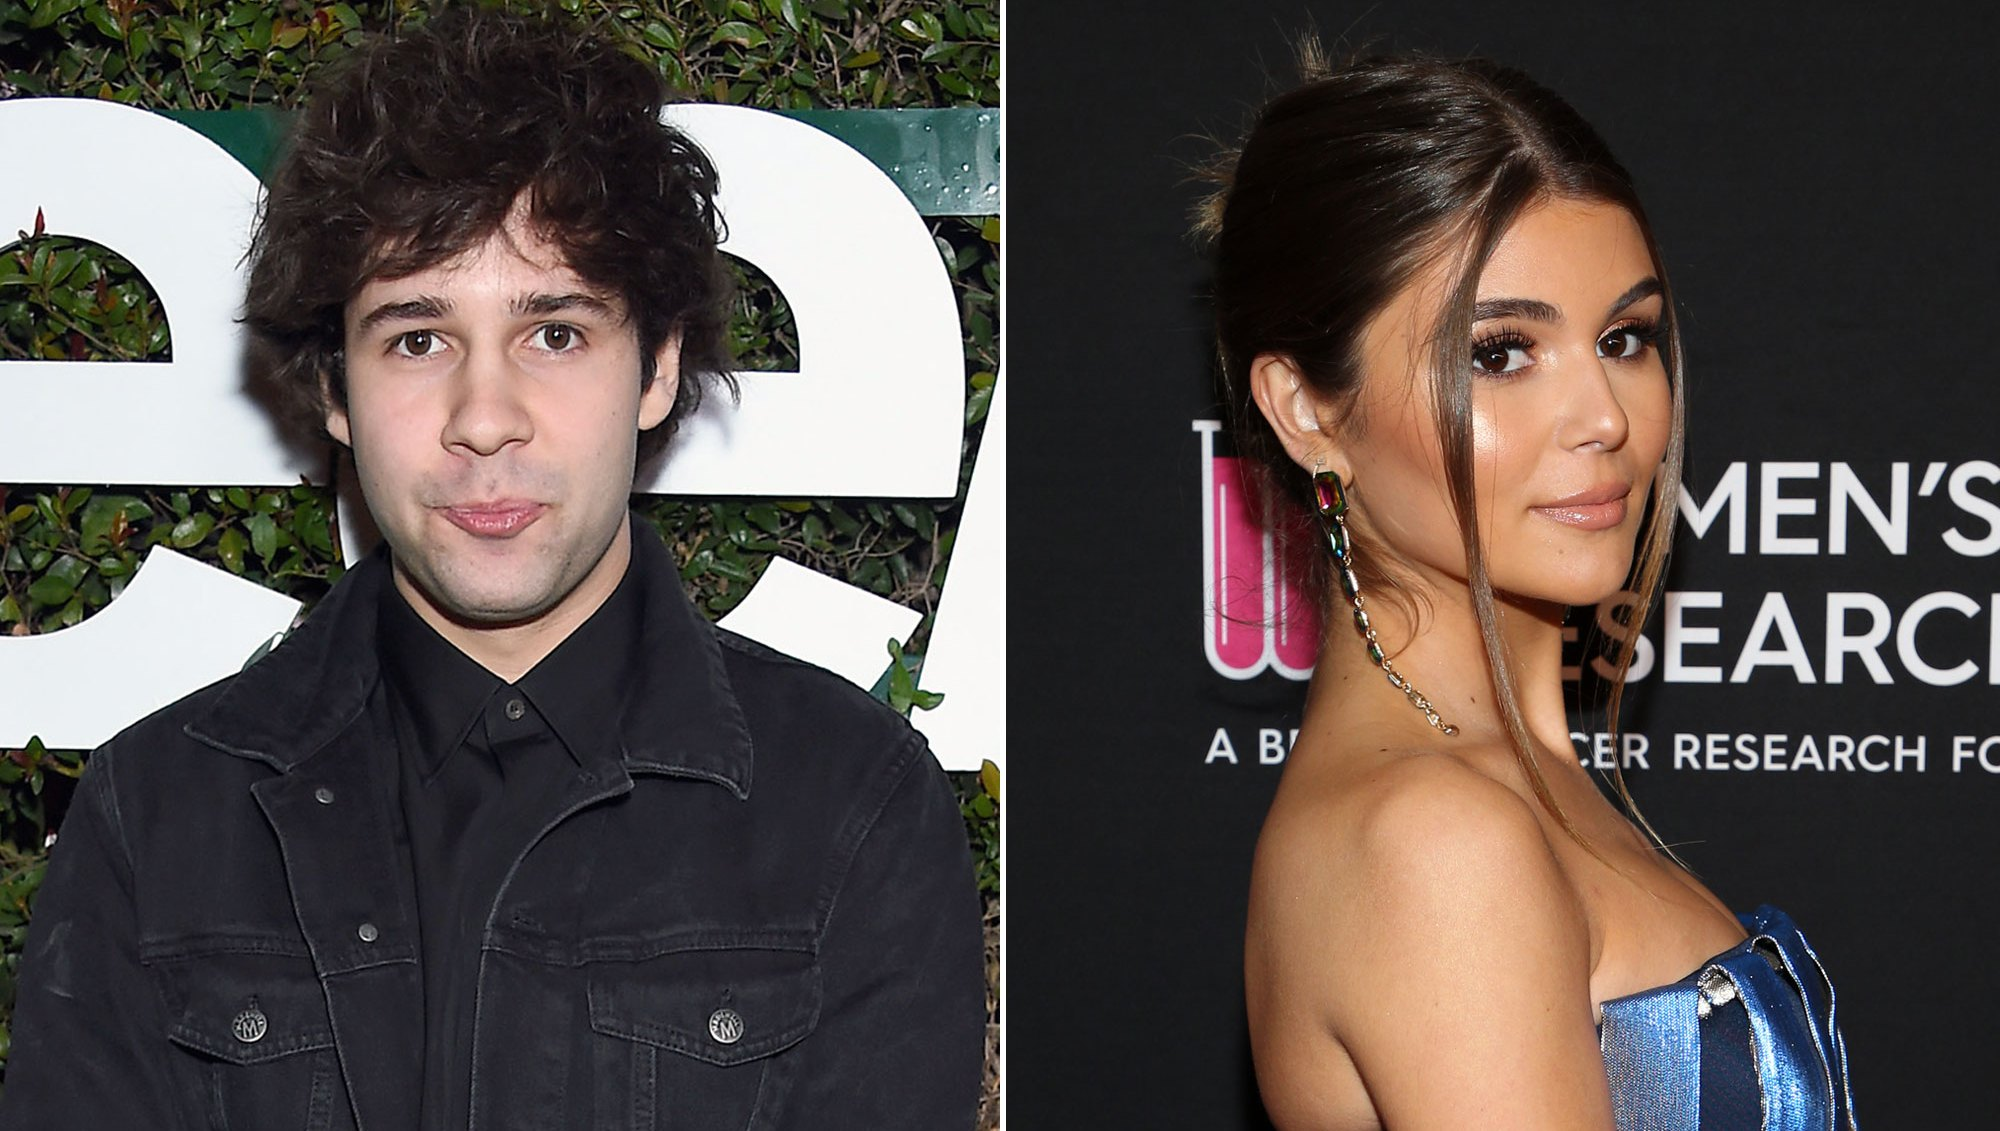 David Dobrik Is 'Definitely' Checking In With Olivia Jade Giannulli Amid College Scam: 'Everyone Makes Mistakes'